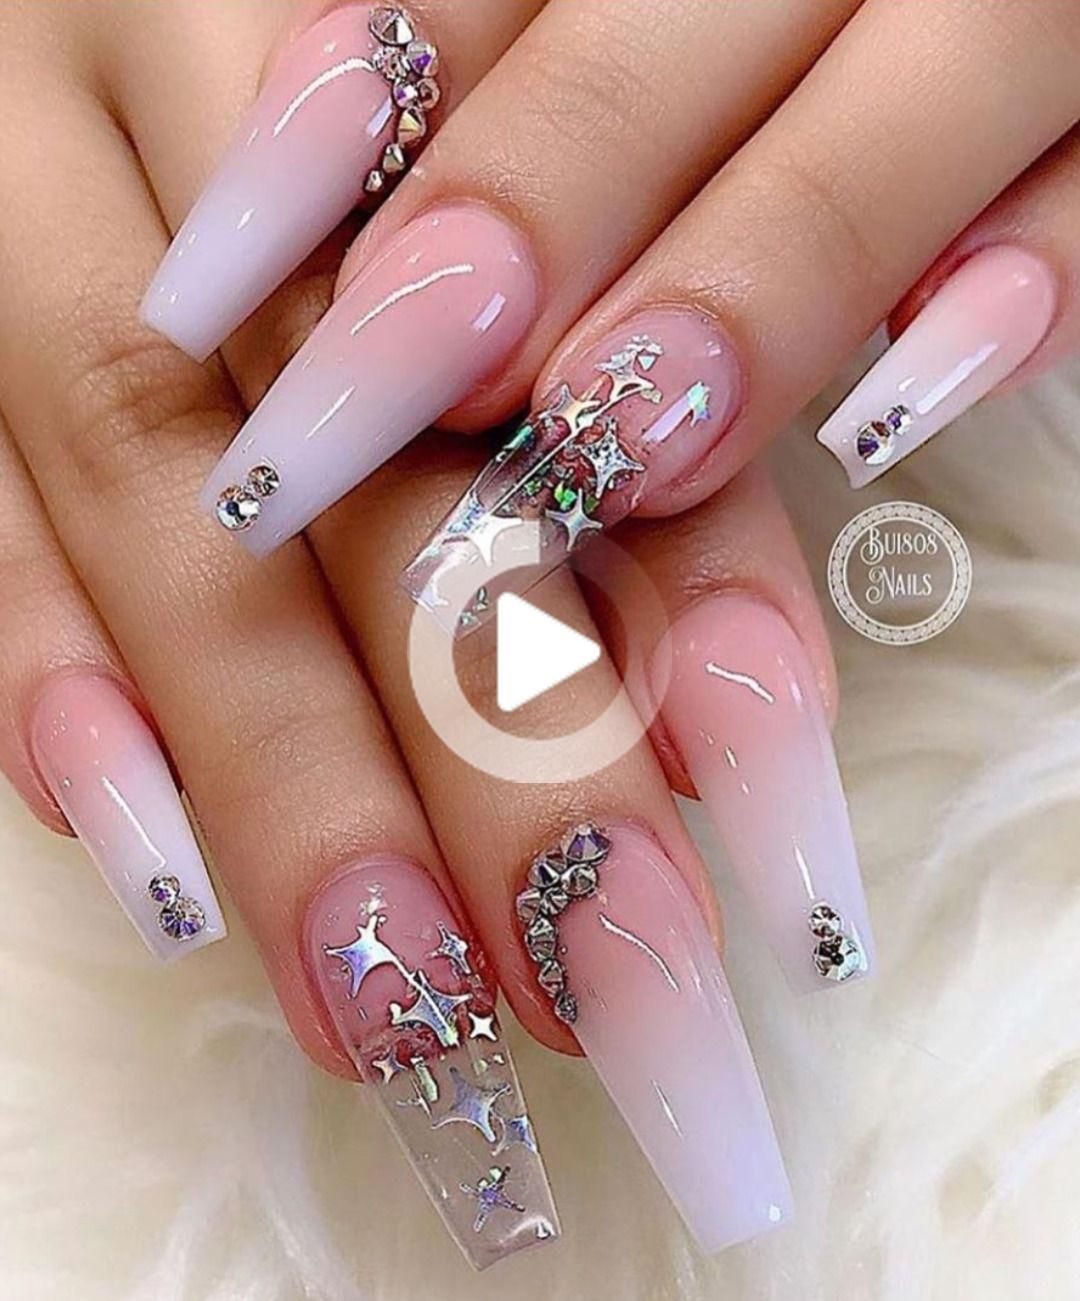 How To Do French Ombre Dip Nails In 2020 Winter Nails Acrylic Dipped Nails Coffin Nails Designs